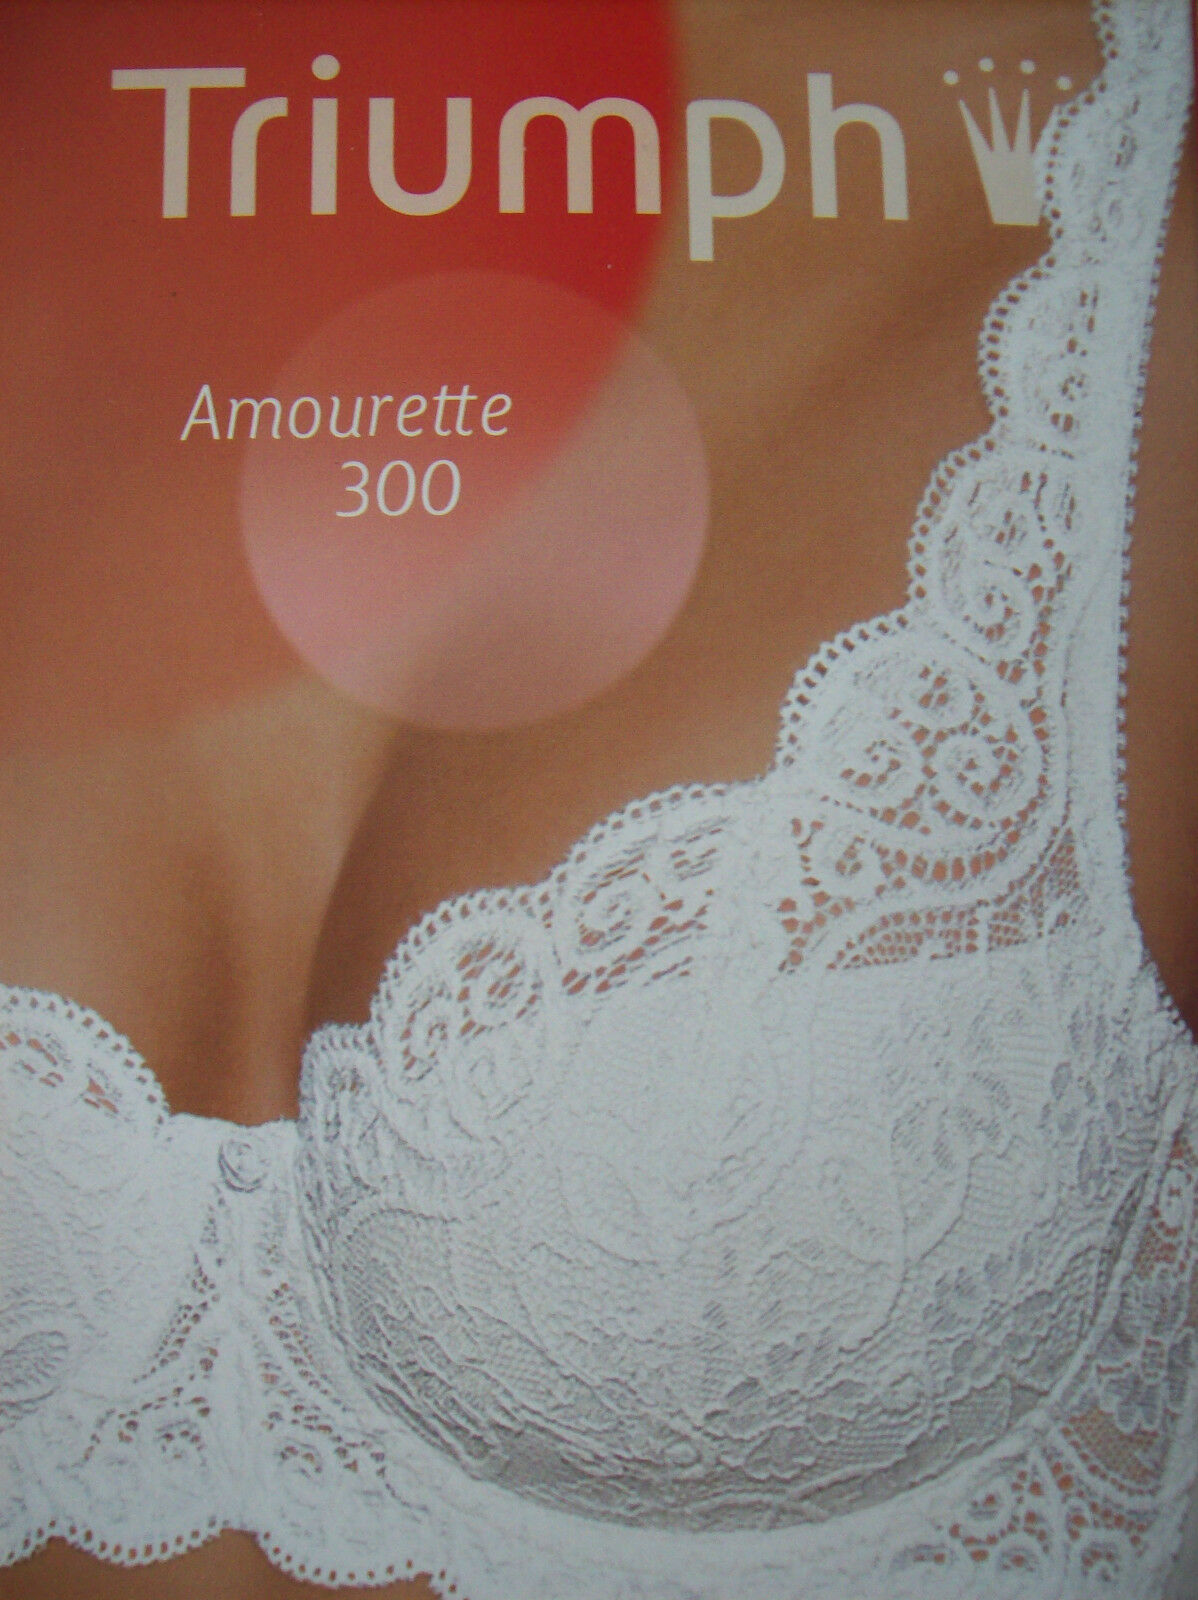 Bra Triumph Amourette 300 WHP Padded Bra Poudre Skin Nude Size 32 C New + Tags